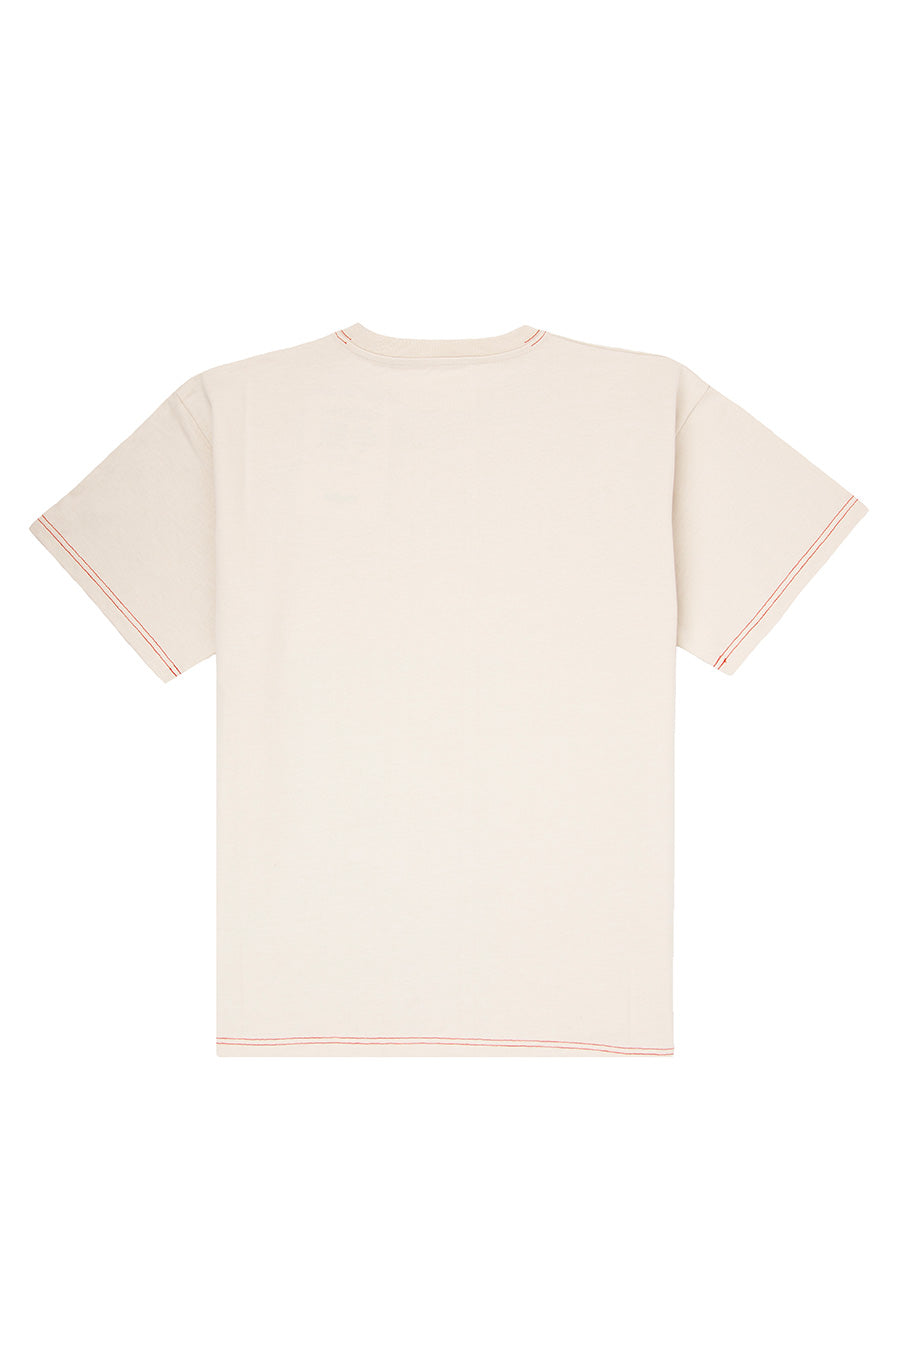 Rassvet - Beige Men's T-Shirt | 1032 SPACE